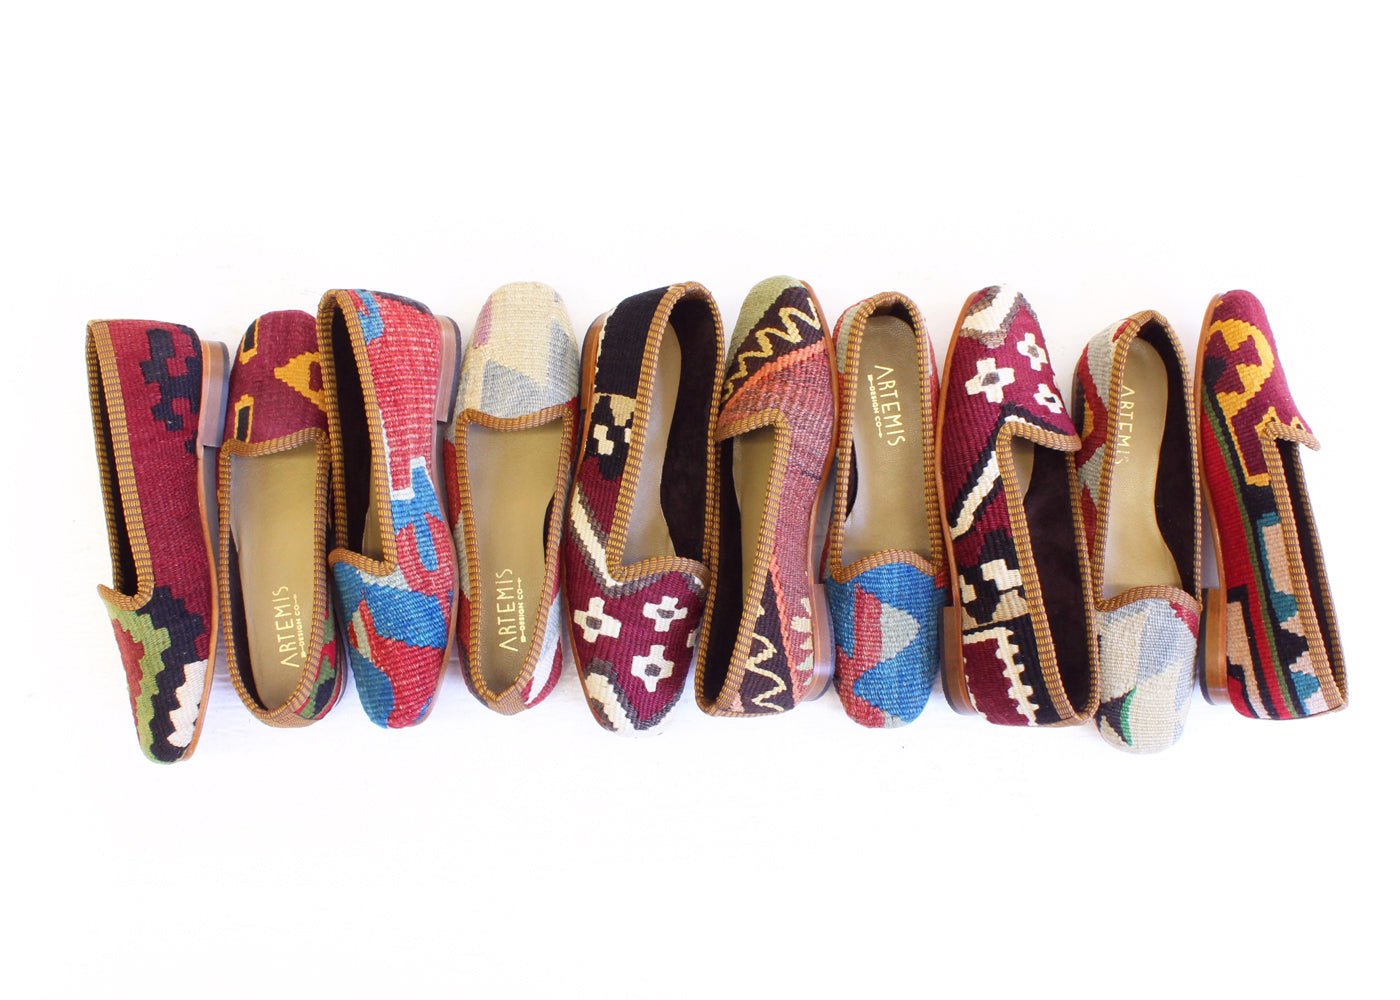 Kilim loafers in multiple patterns from Artemis Design Co